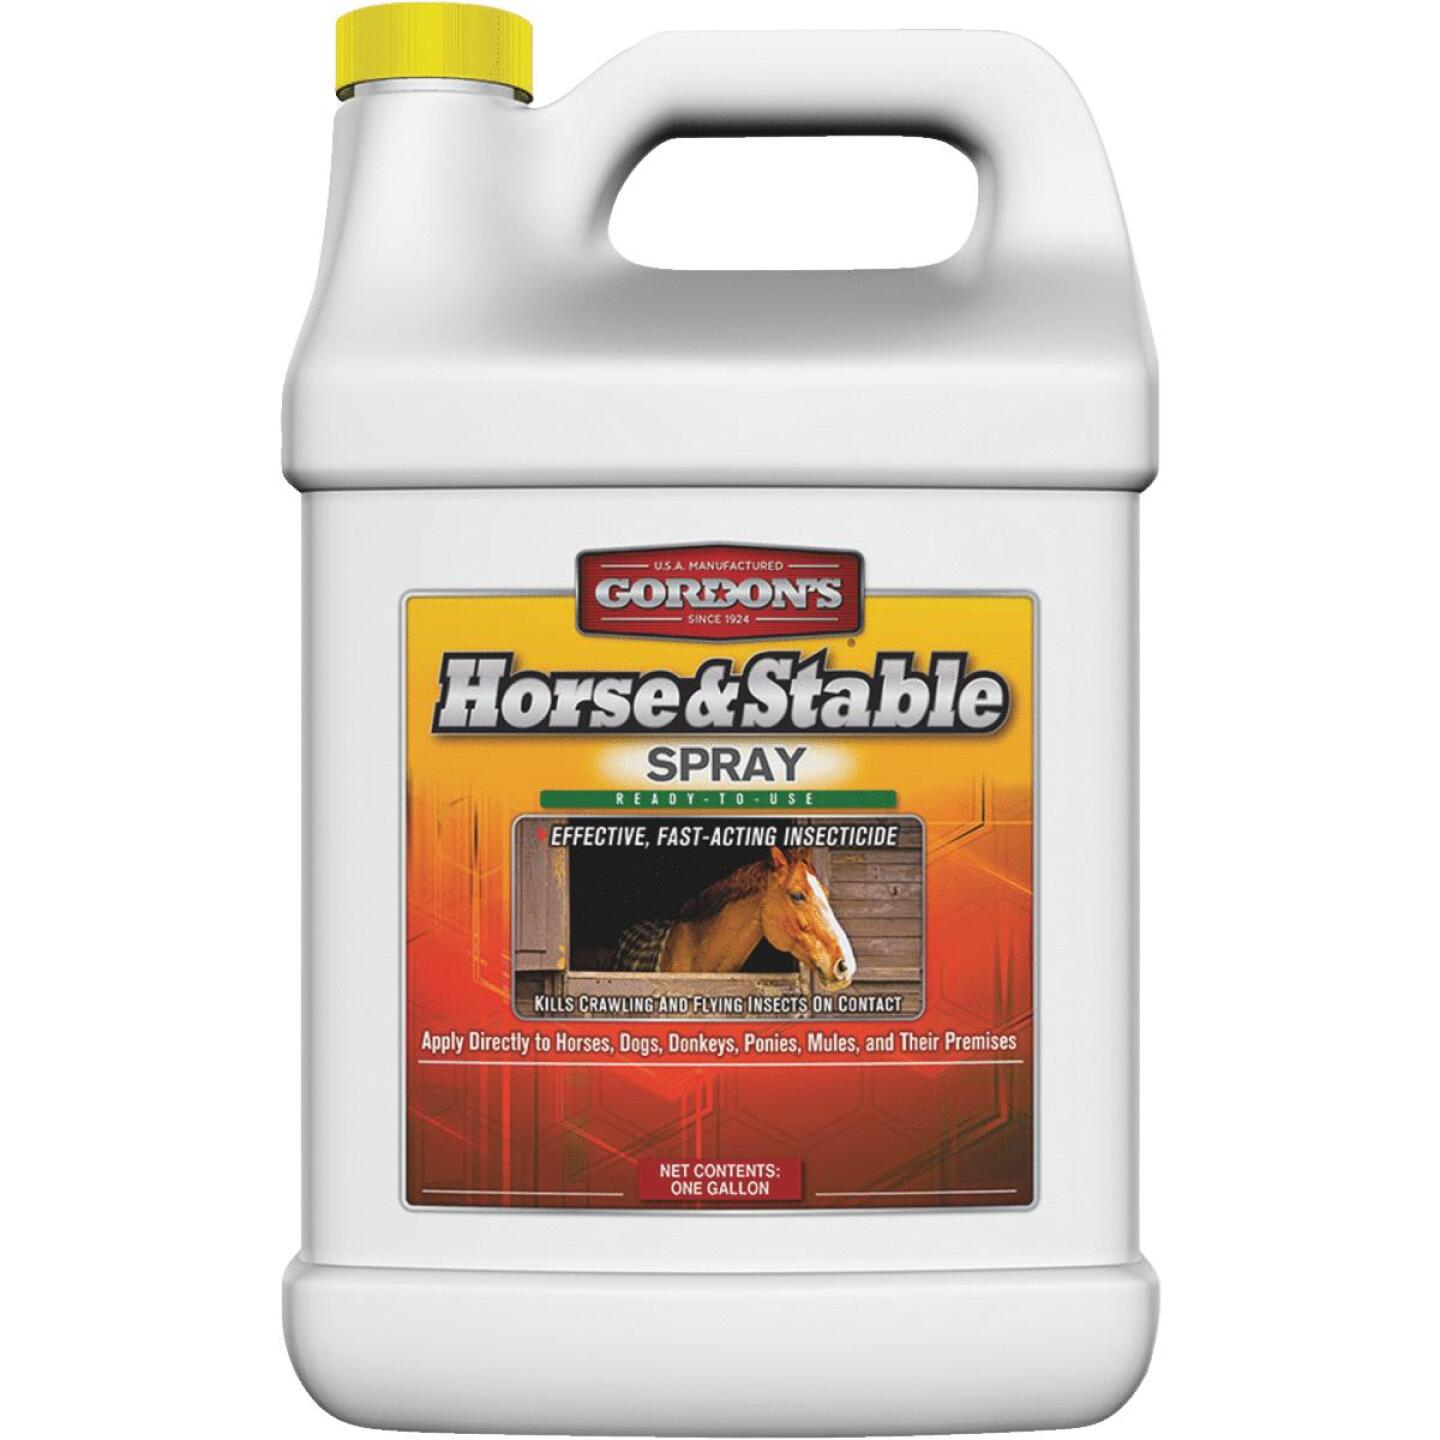 Gordons 128 Oz. Ready To Use Horse & Stable Fly Spray Image 1